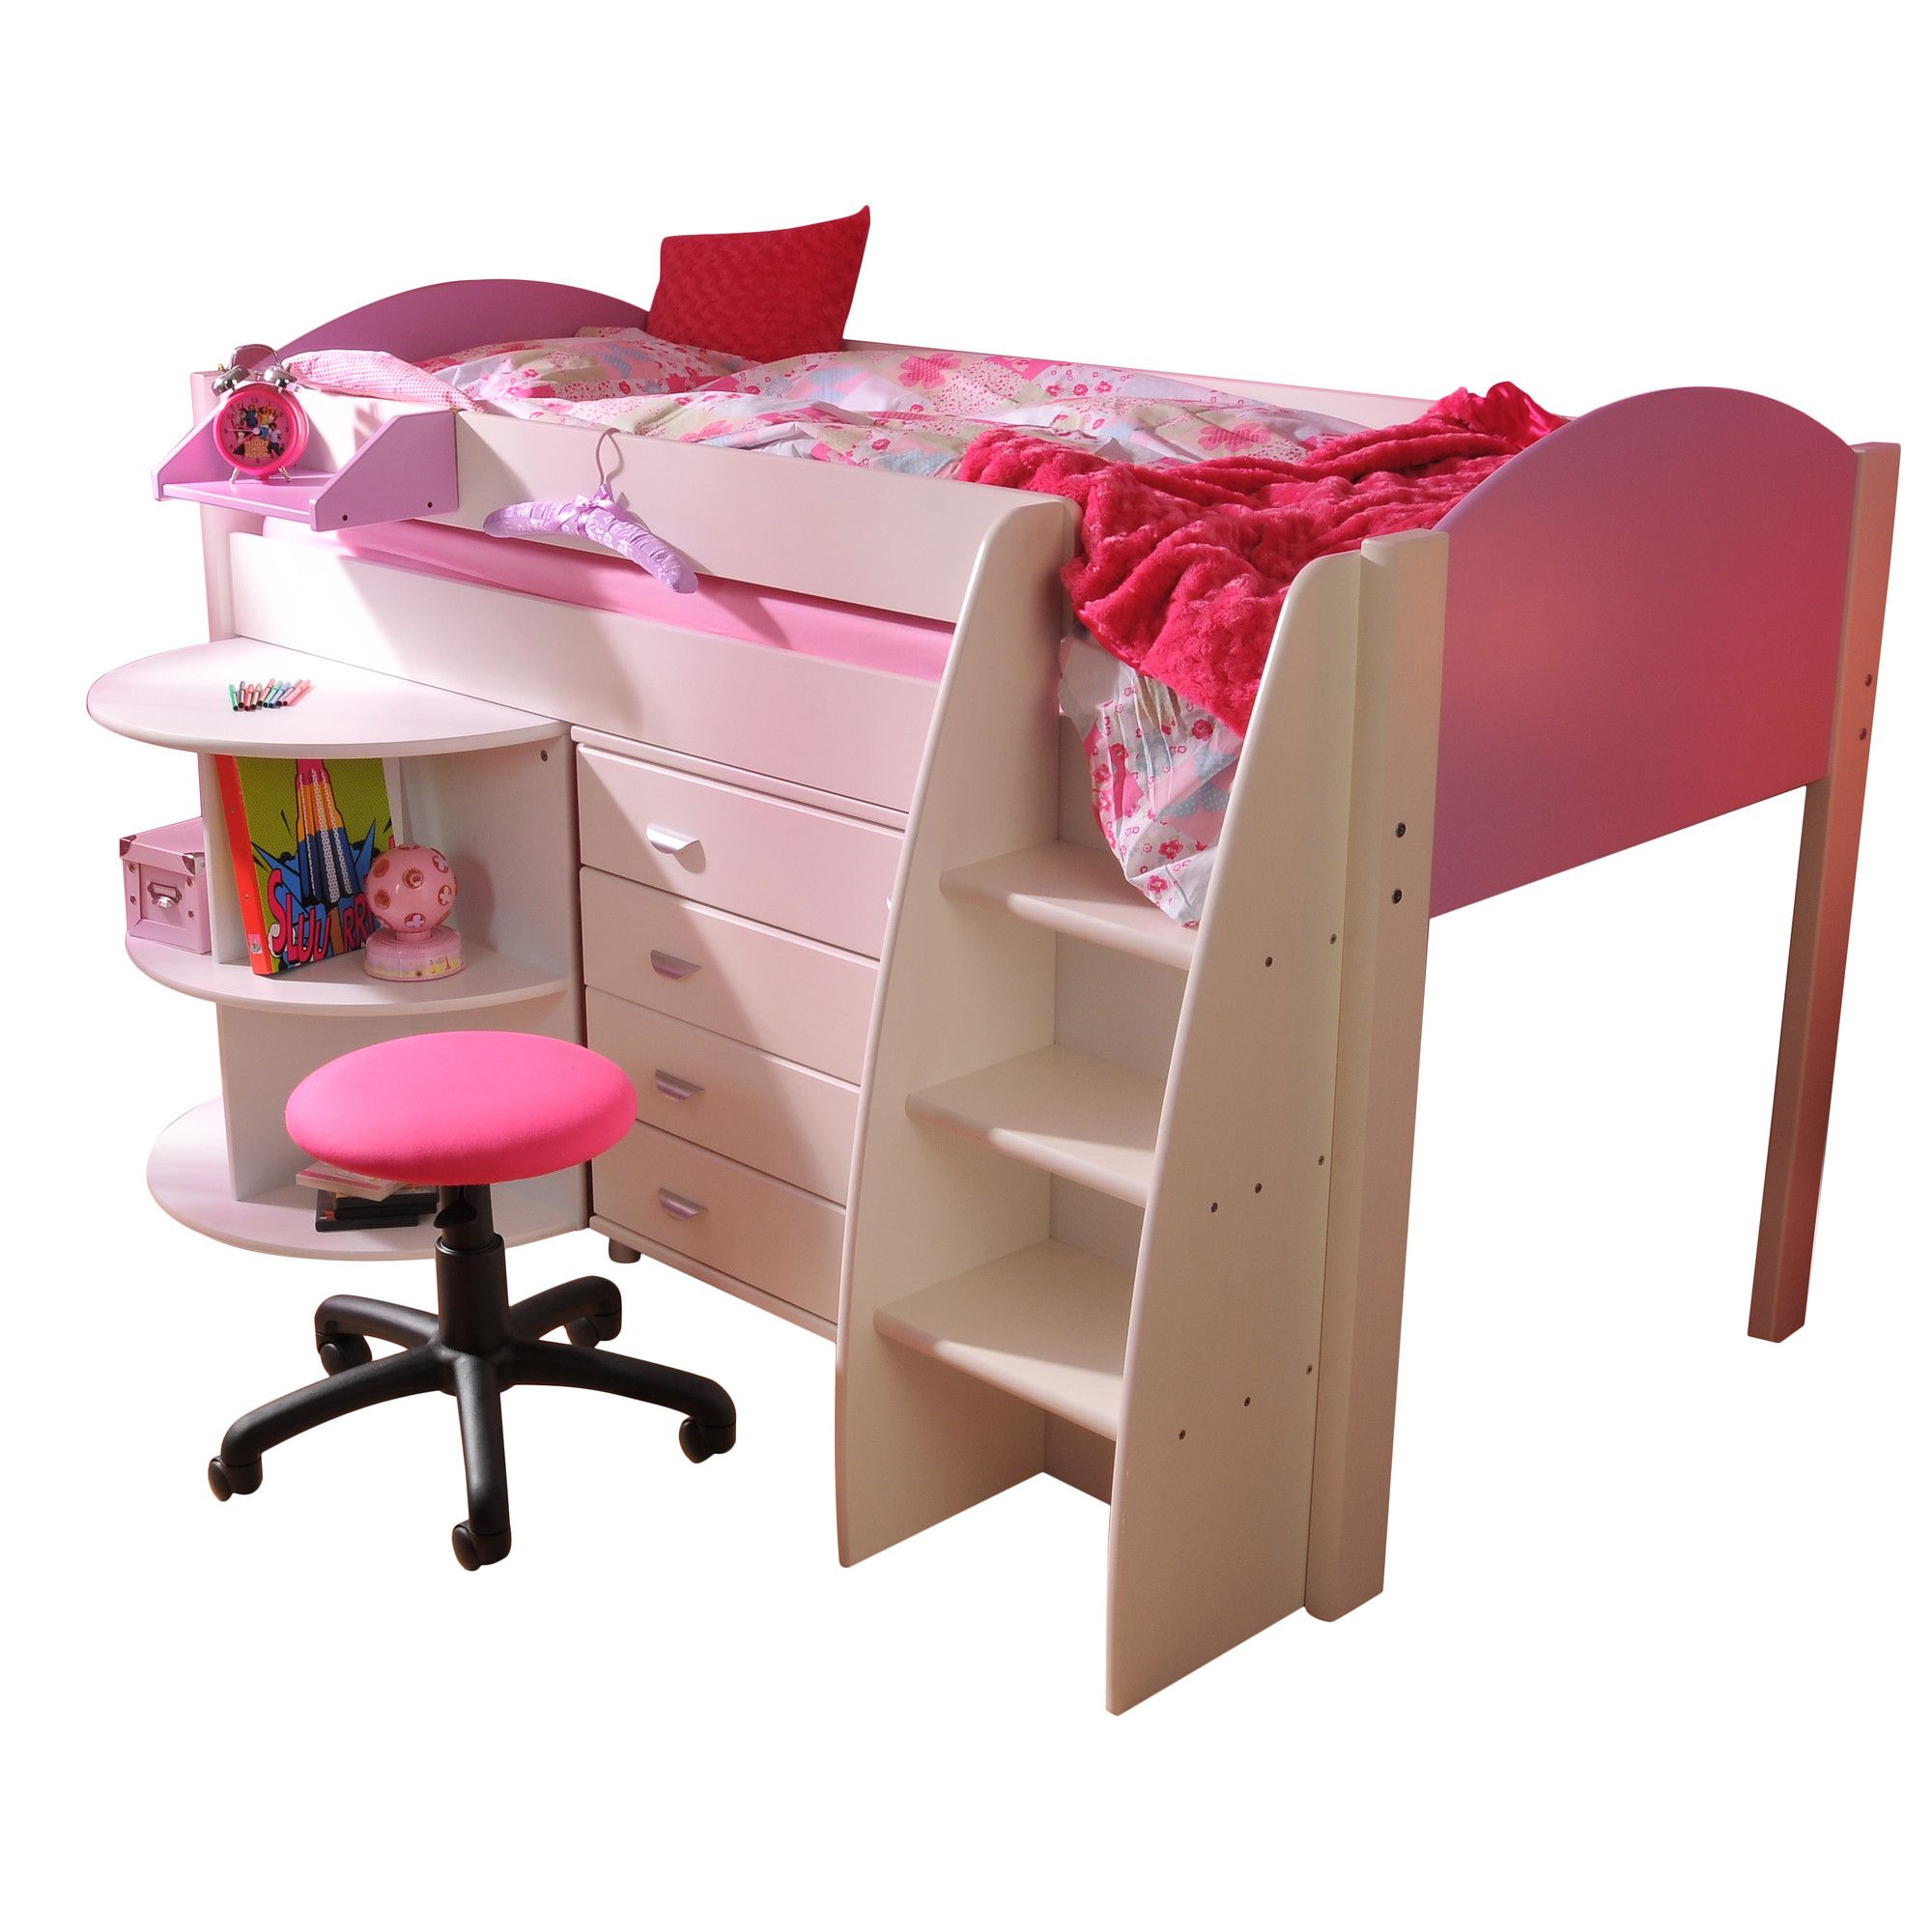 Stompa Rondo Mid Sleeper with 4 Drawer Chest and Extending Desk - Lilac - White at Tesco Direct